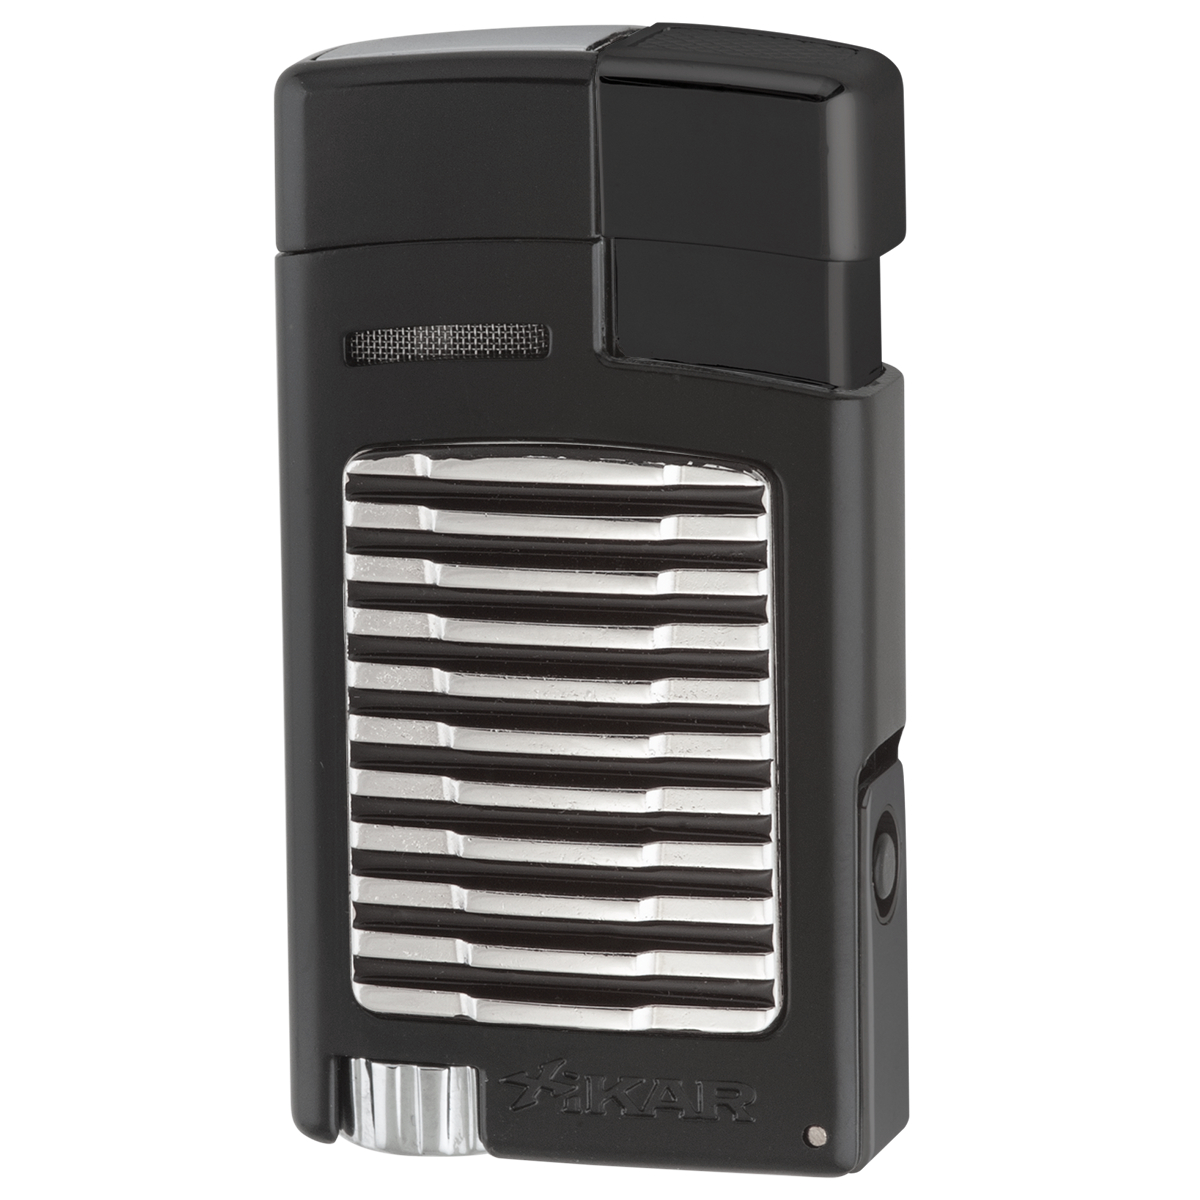 Xikar Forte Black Single Jet Lighter